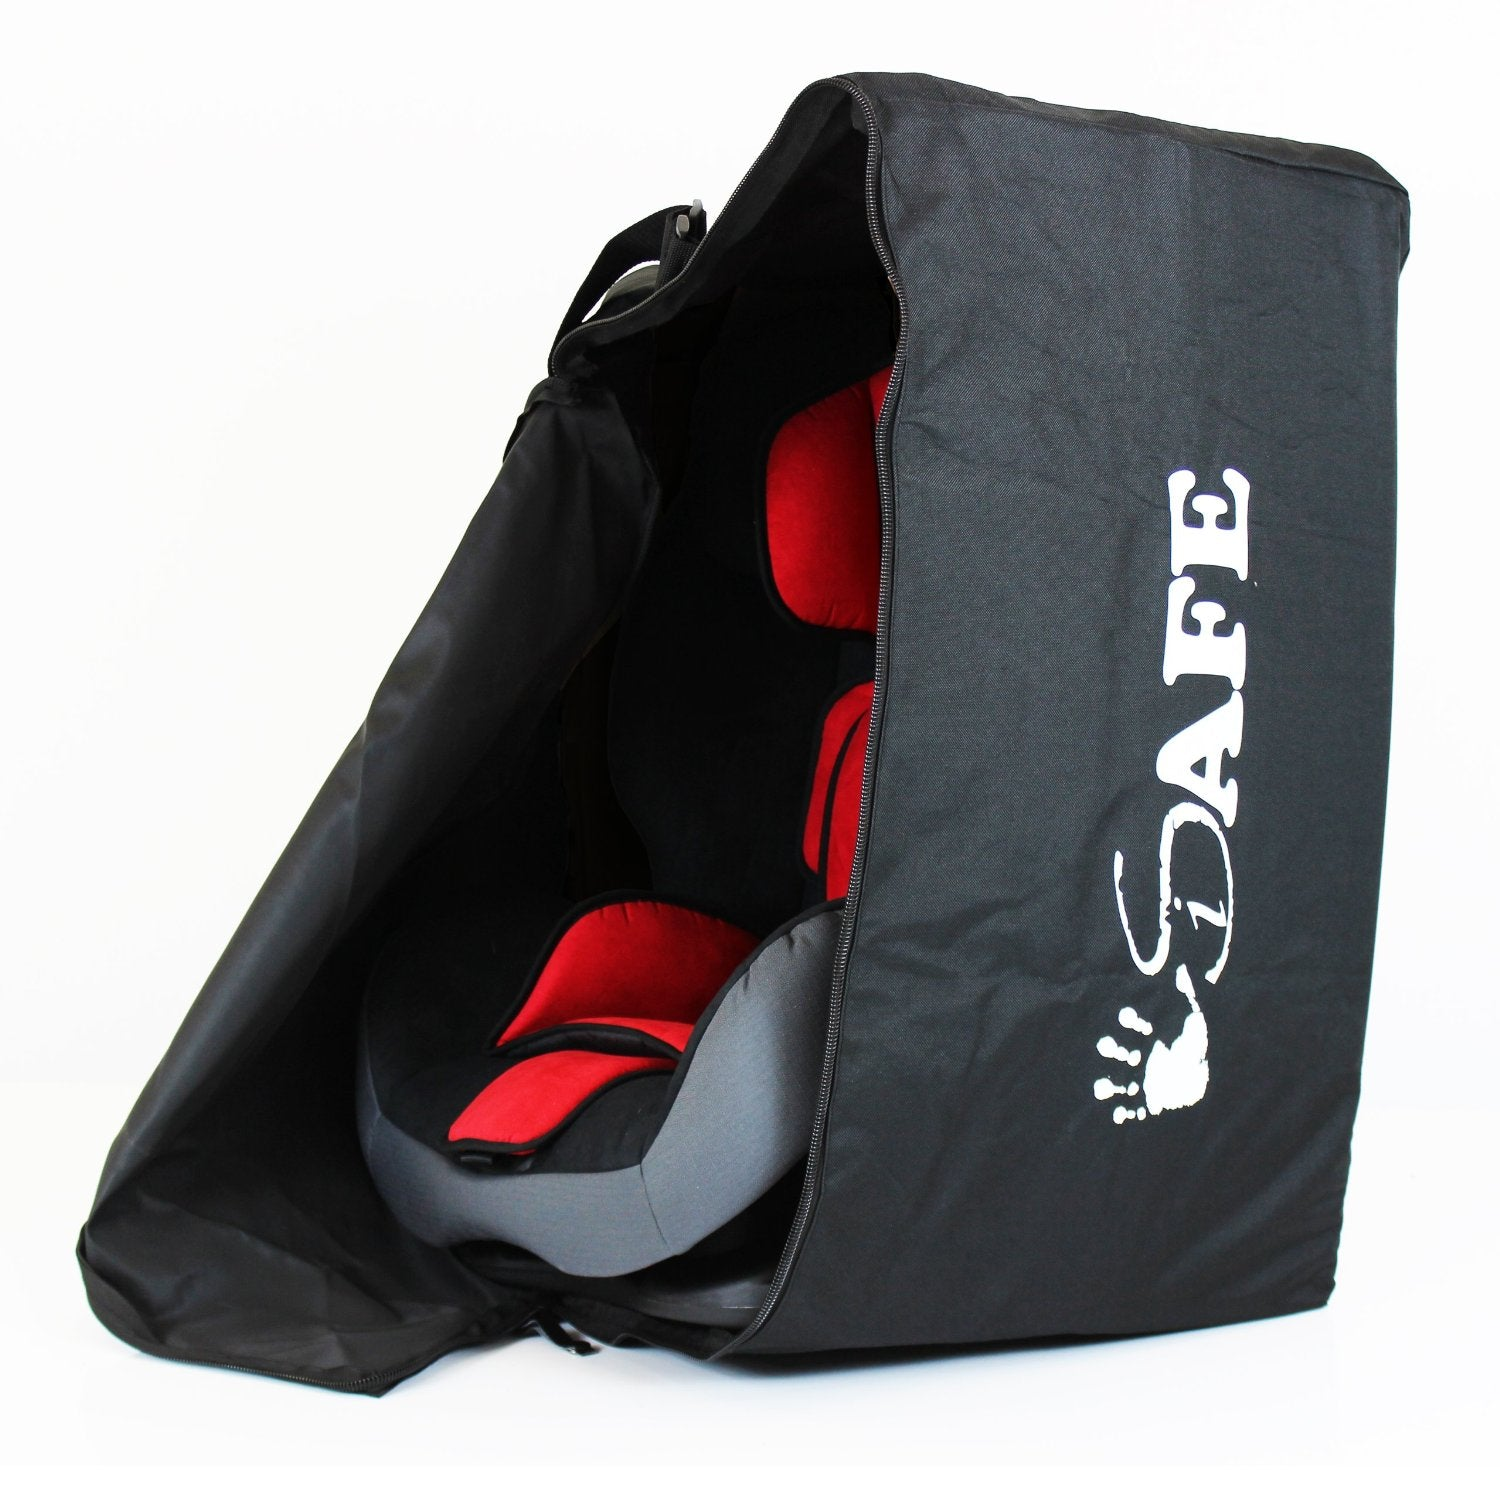 ISafe Car Seat Travel Holiday Luggage Bag Heavy Duty Protector